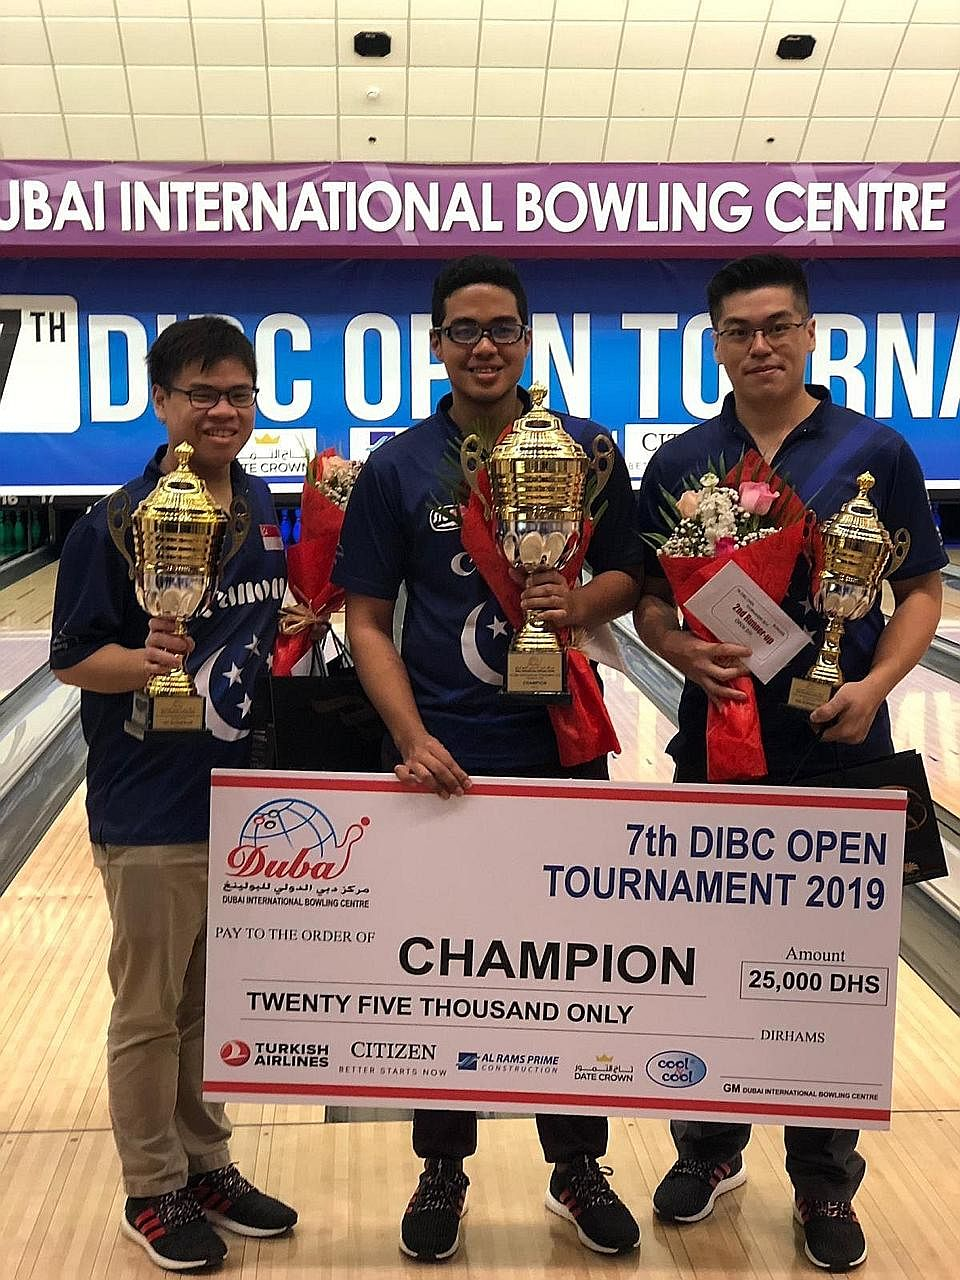 Timothy Tham, Muhd Danial and Marcus Lim make it an all-Singapore podium at the 7th DIBC Open Bowling Tournament.